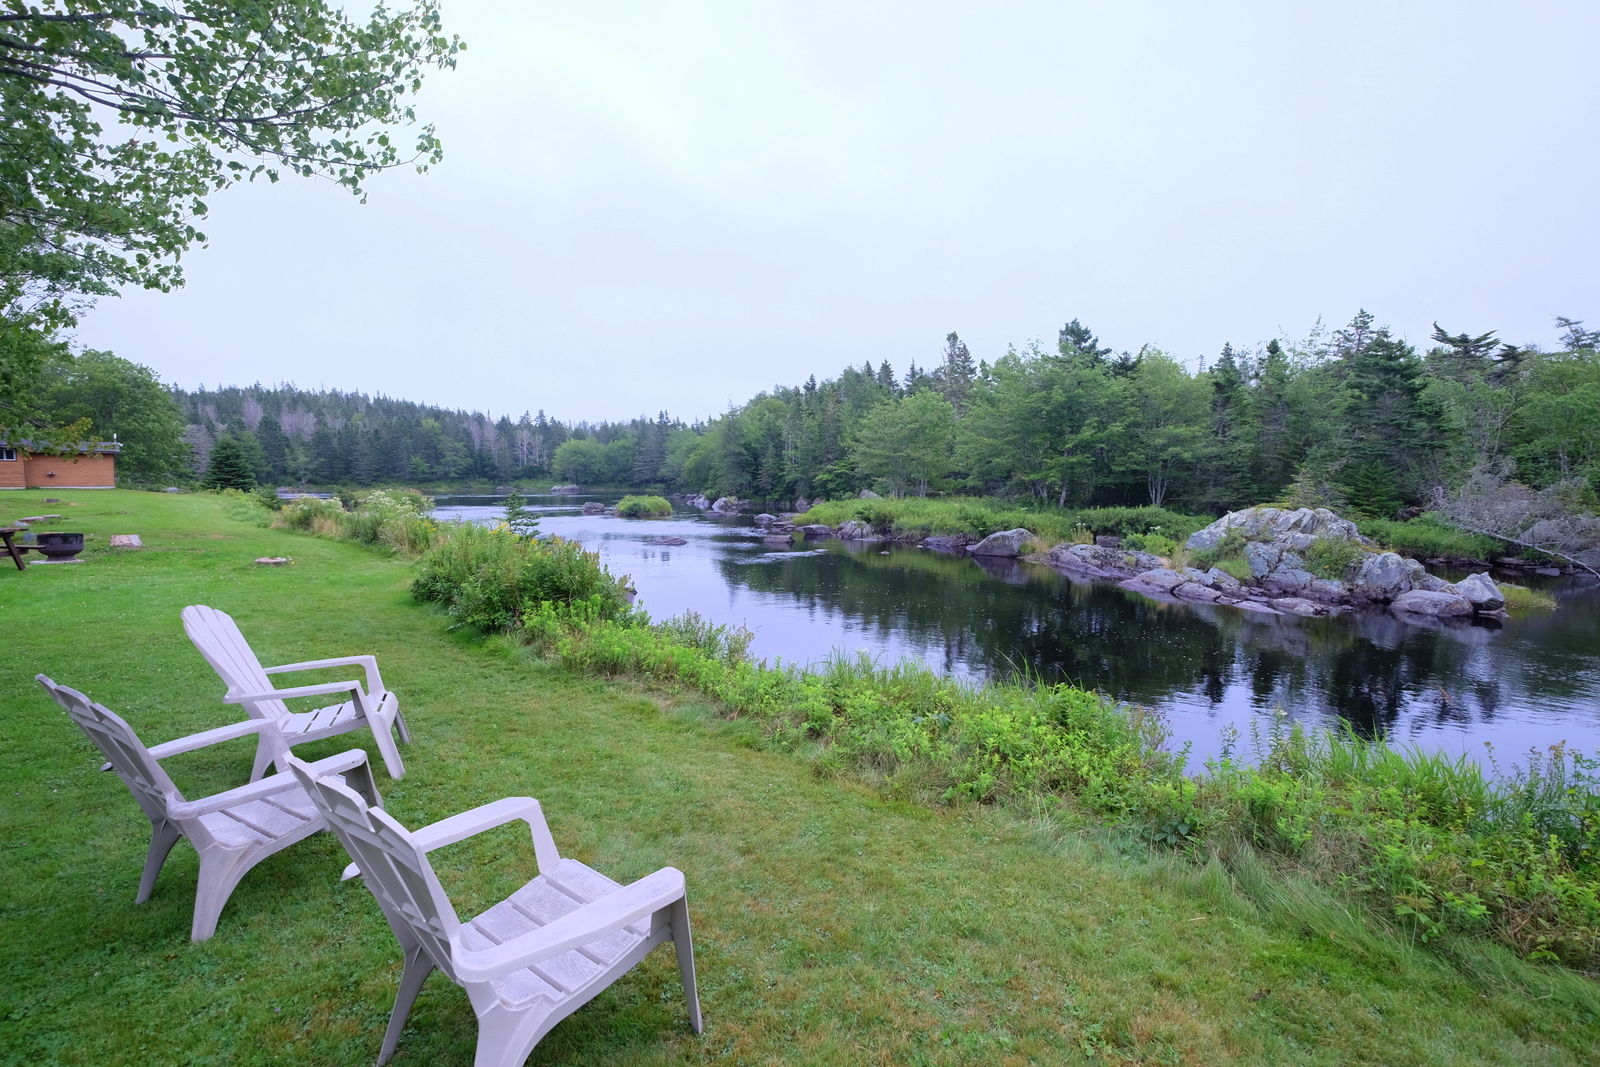 Liscombe Lodge is a great spot on Nova Scotia's Eastern Shore. - JIM BYERS PHOTO